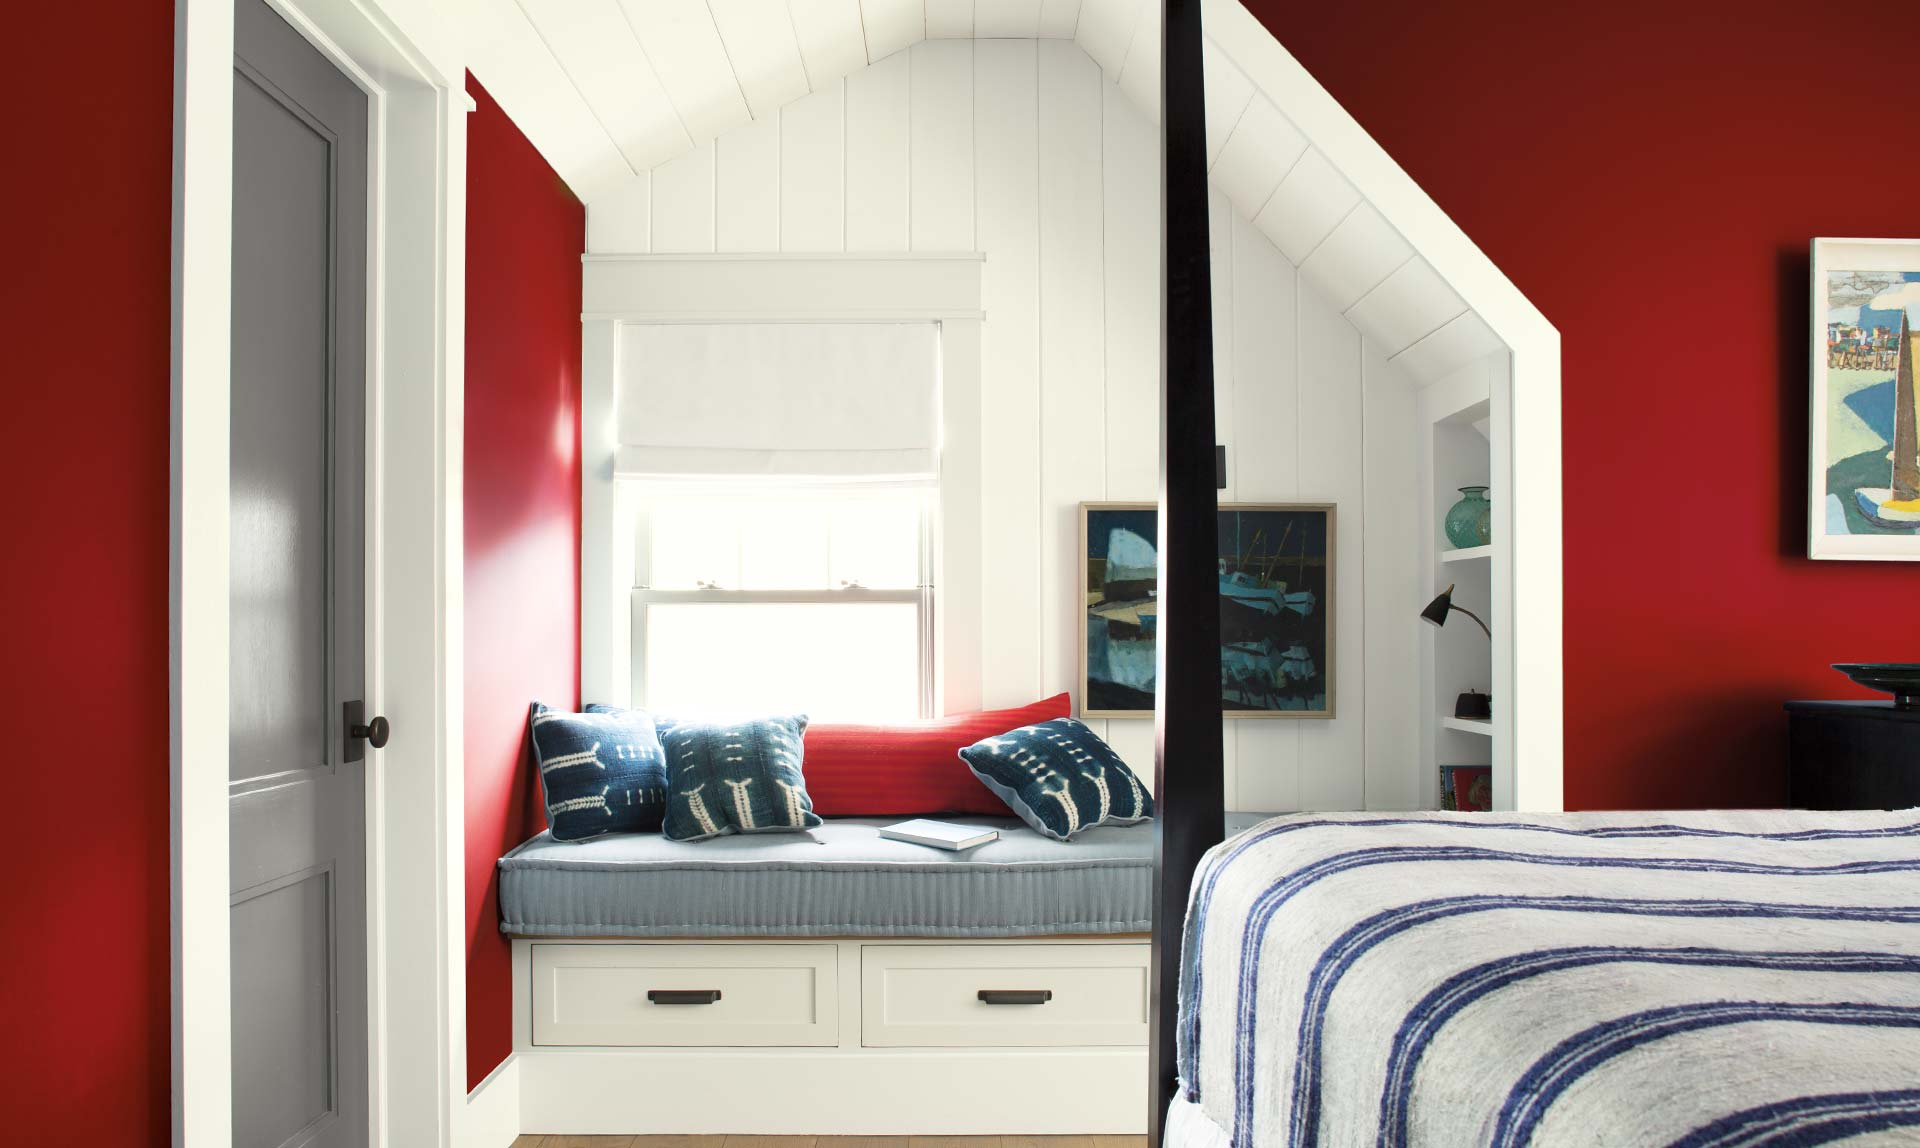 2018 Colour Trends - Caliente AF-290 | Benjamin Moore